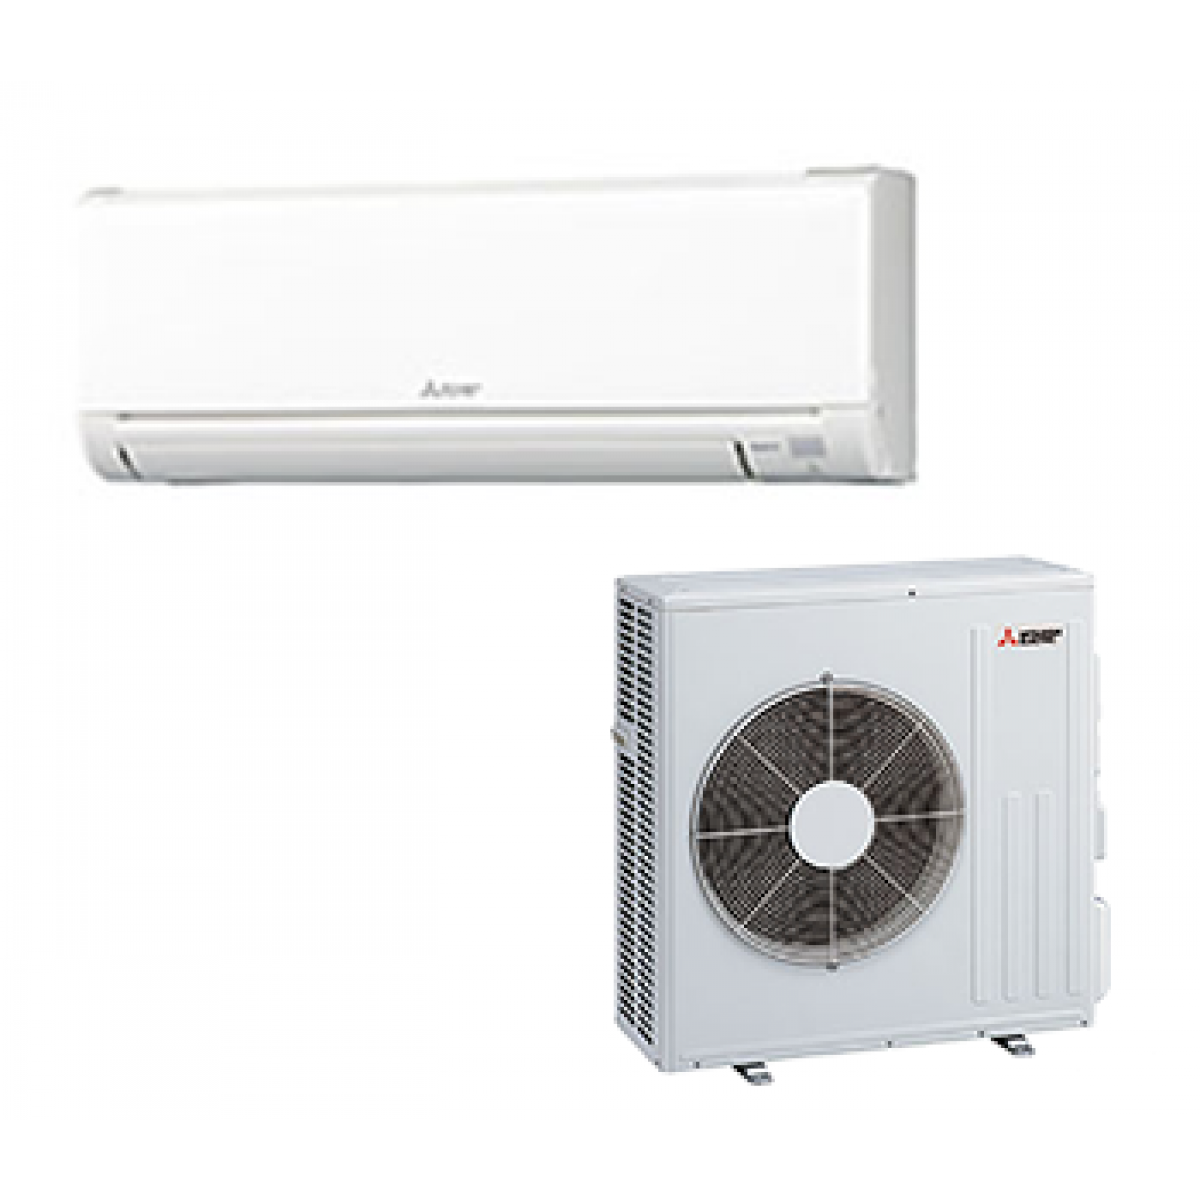 #824F49 Mitsubishi 24K BTU 20.5 SEER Heat Pump System In Single  Most Effective 5345 Mitsubishi Ductless Heating System pictures with 1200x1200 px on helpvideos.info - Air Conditioners, Air Coolers and more